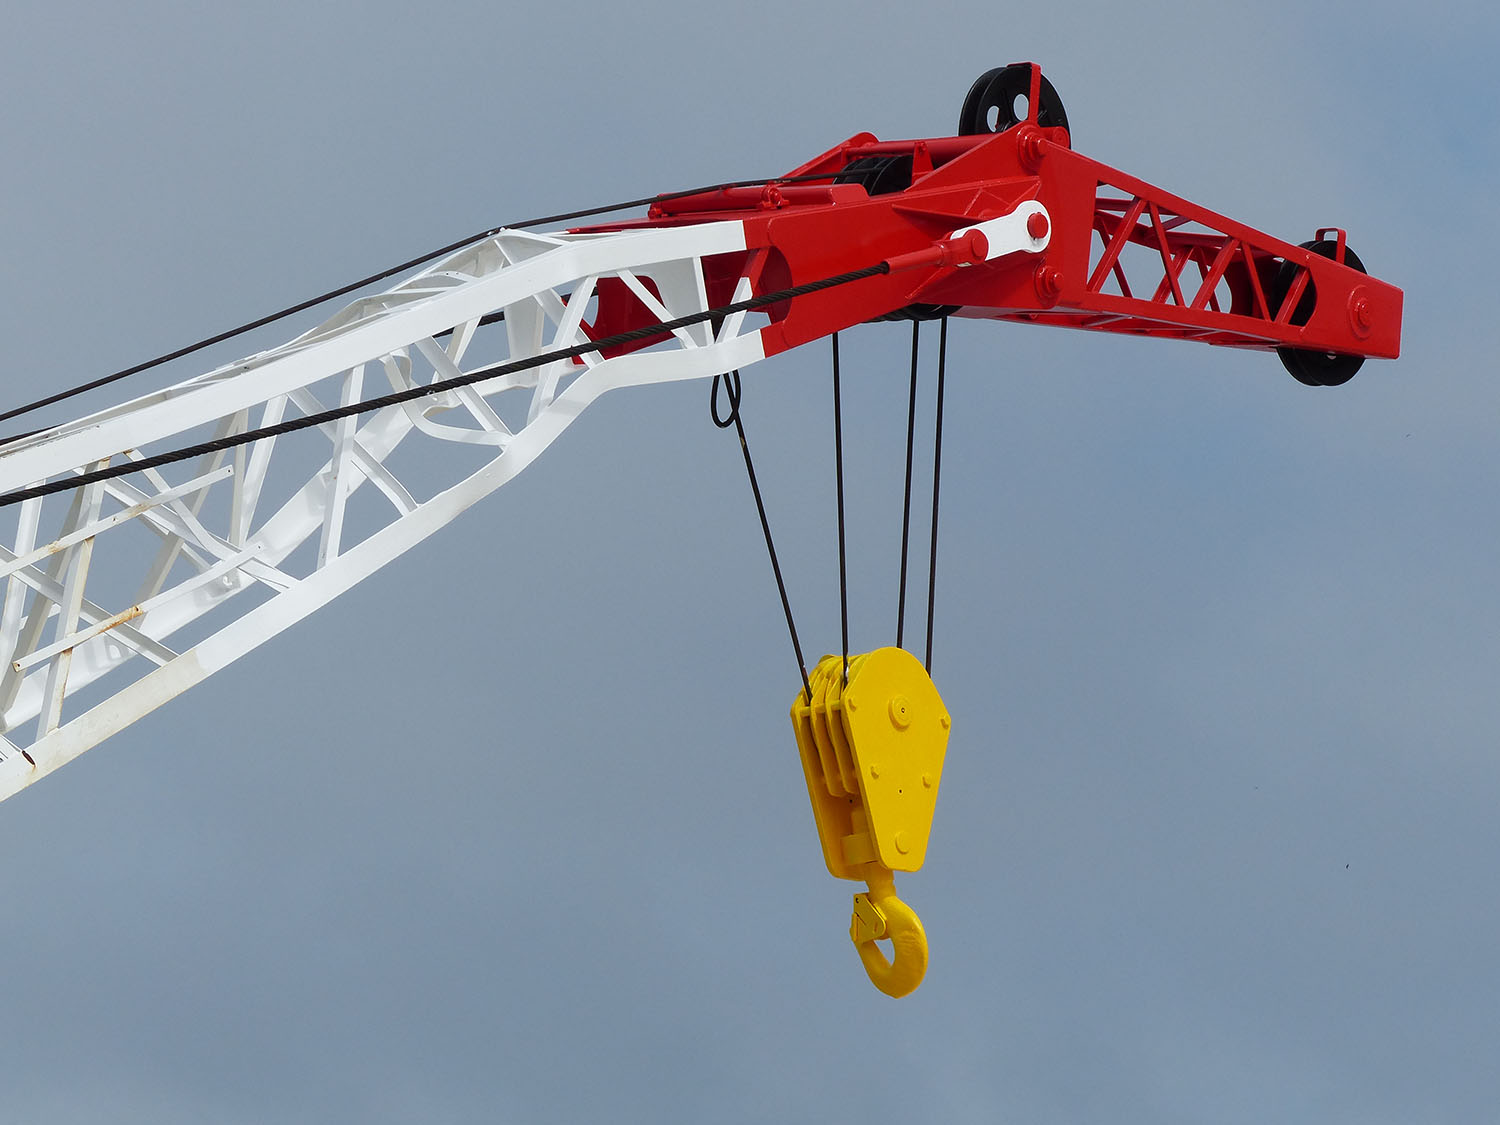 This rig has two cranes to move supplies and people on and off the rig and to move the pipe